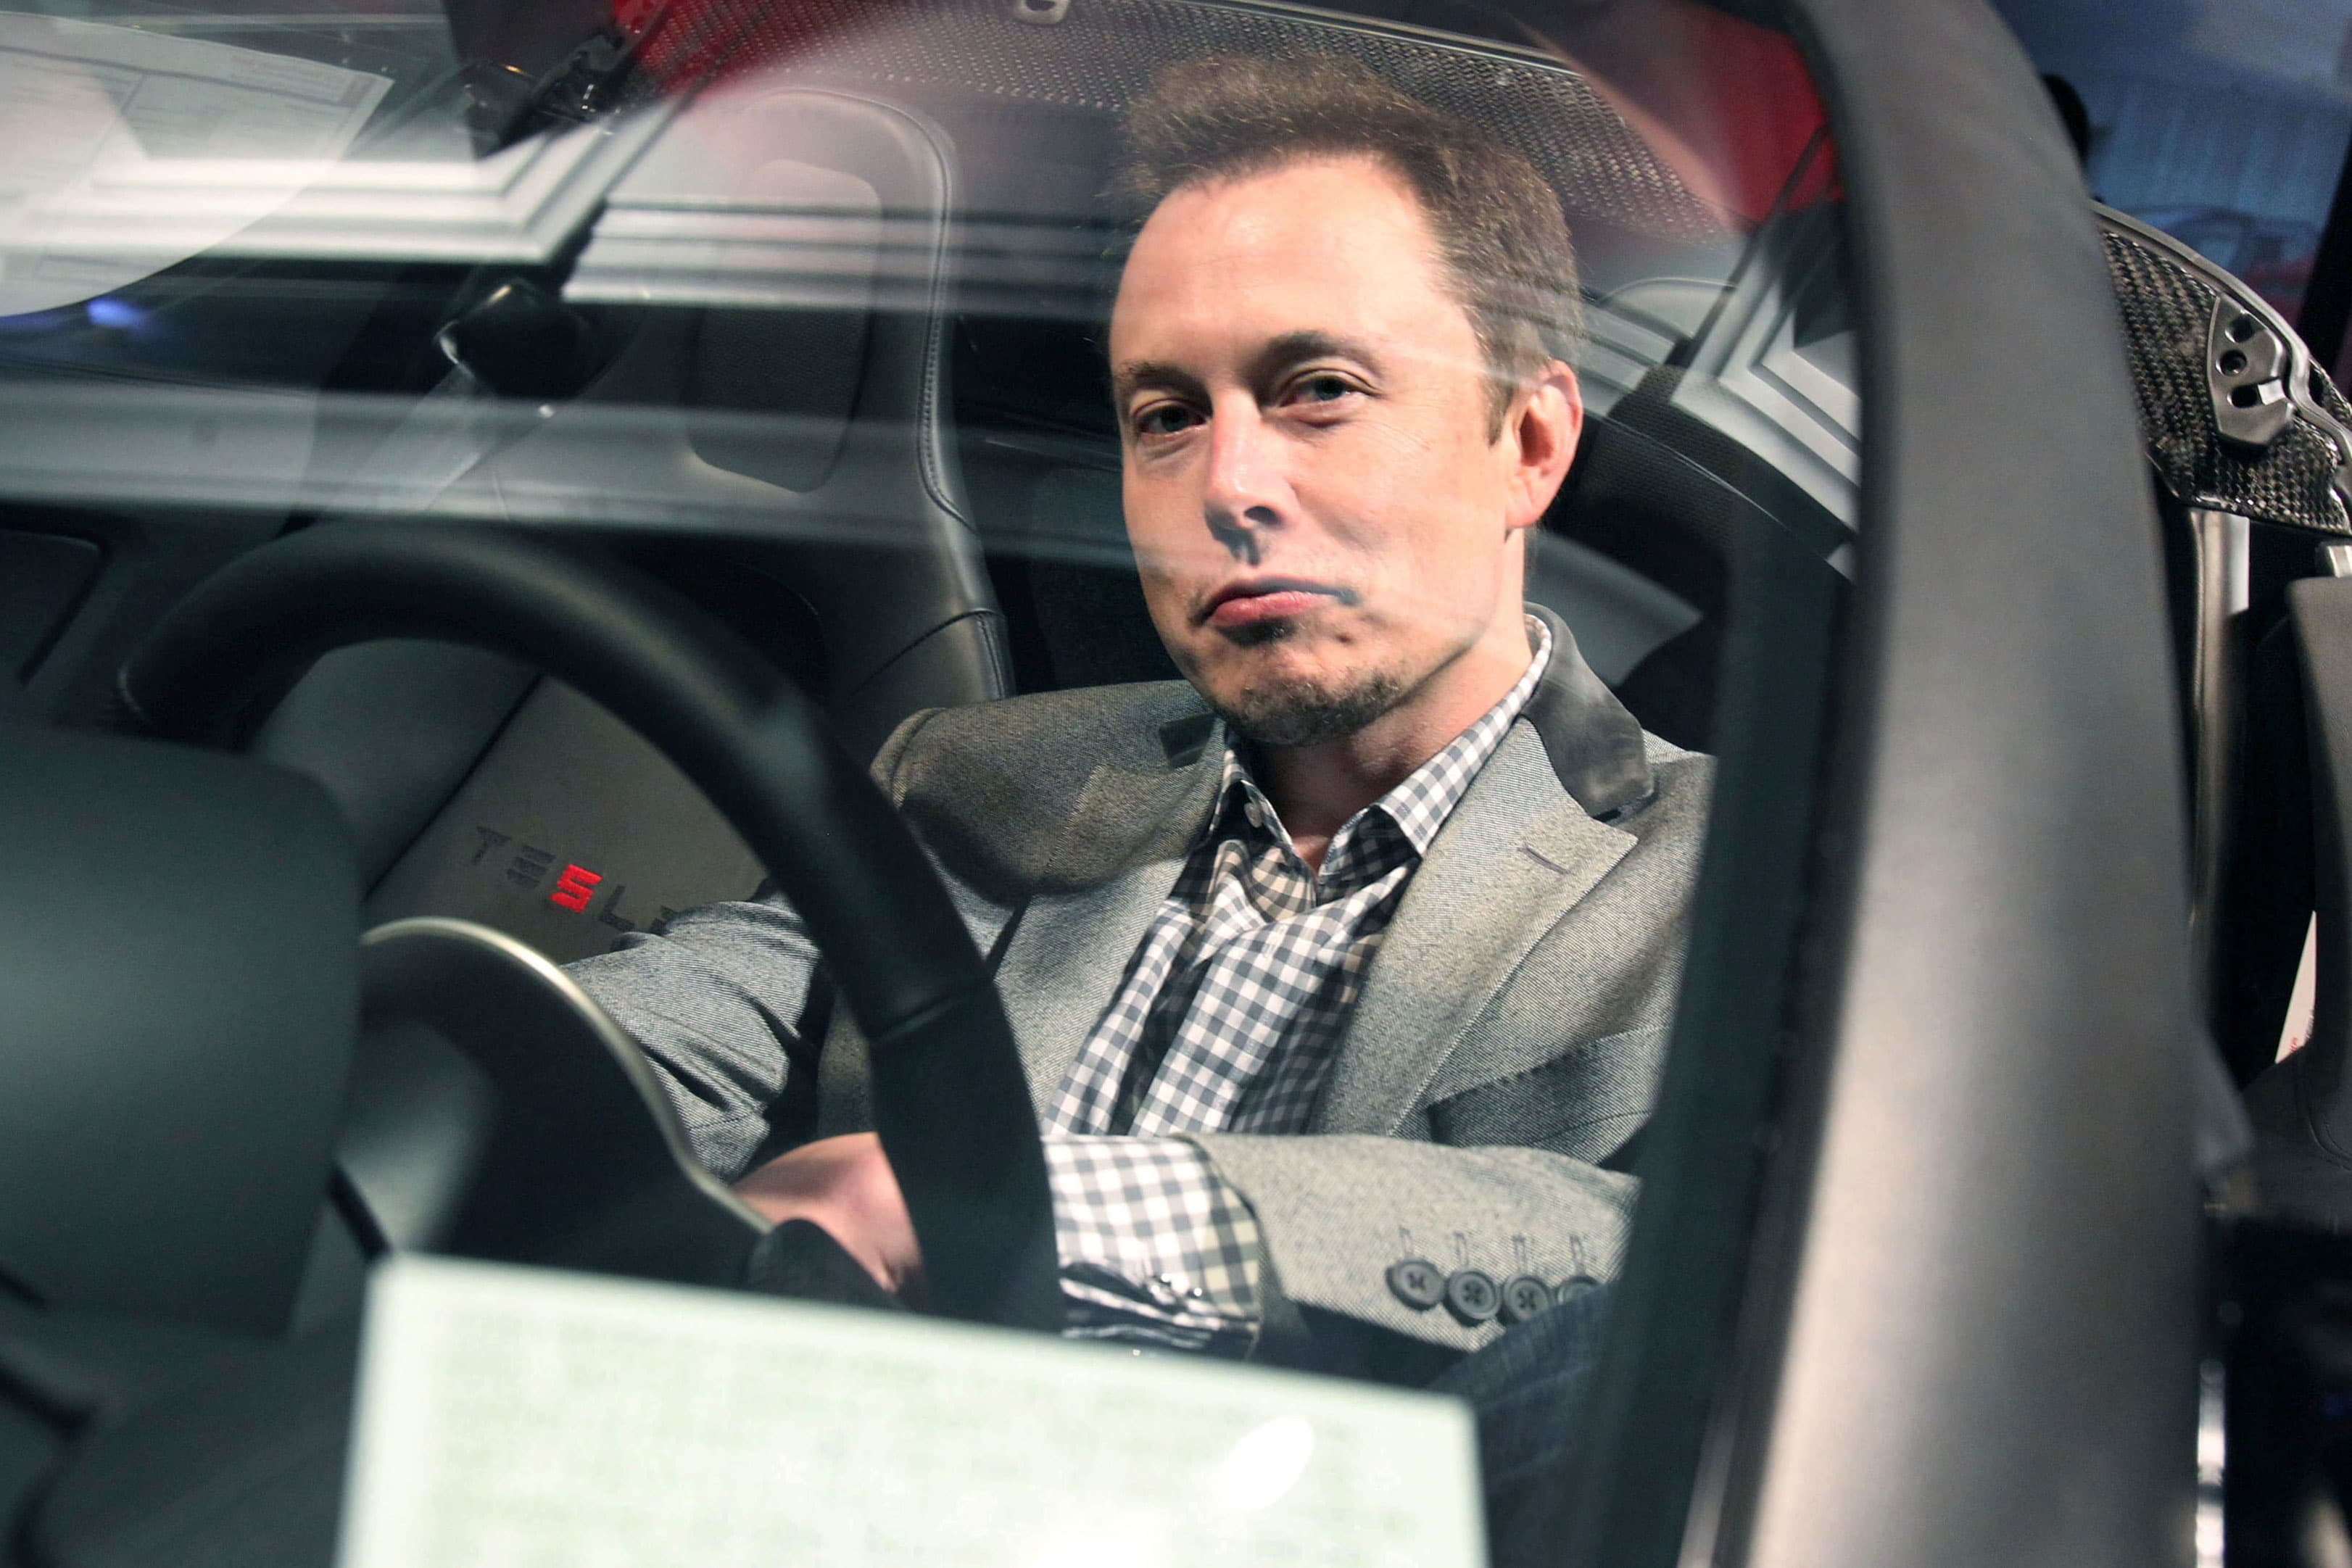 Elon Musk S Extreme Micromanagement Has Wasted Time And Money At Tesla Insiders Say